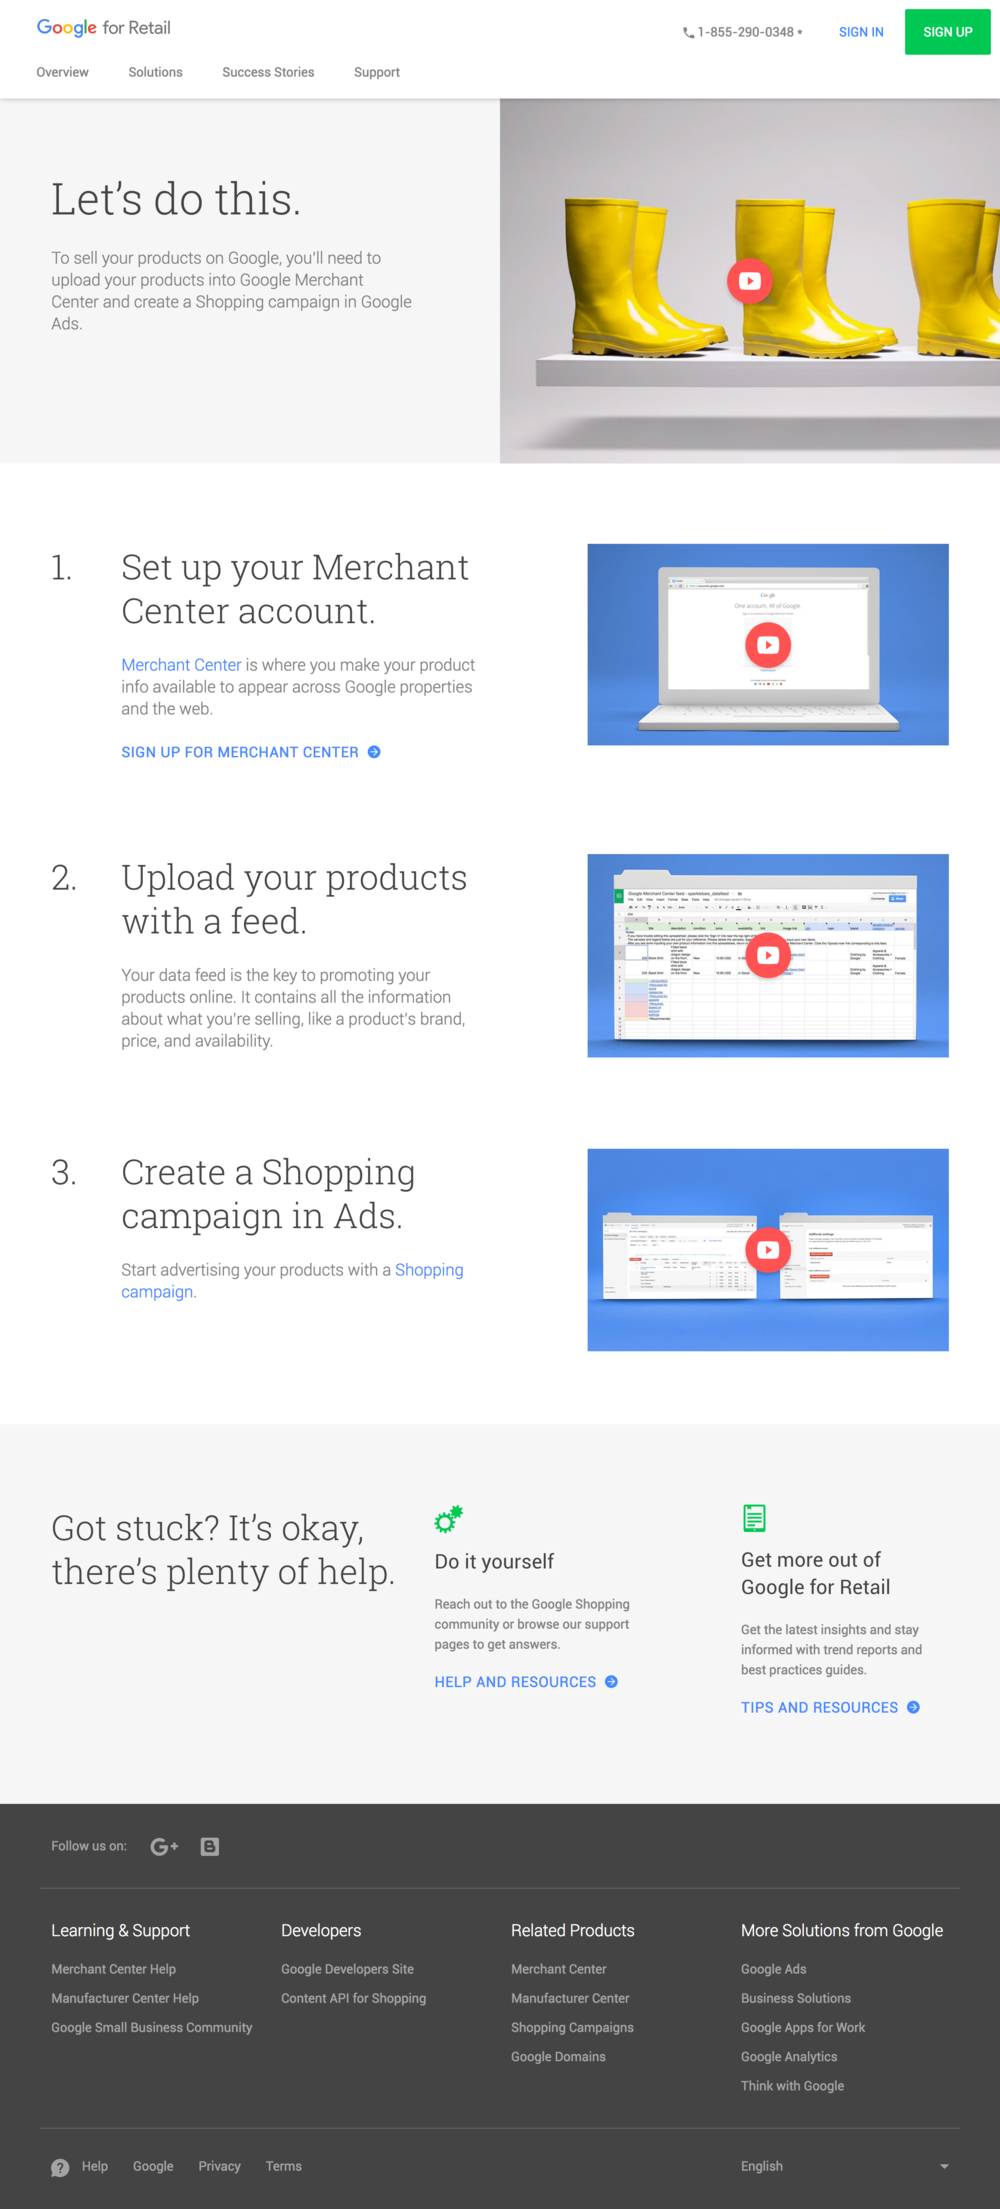 Merchant Center and Shopping Campaigns - How to get started